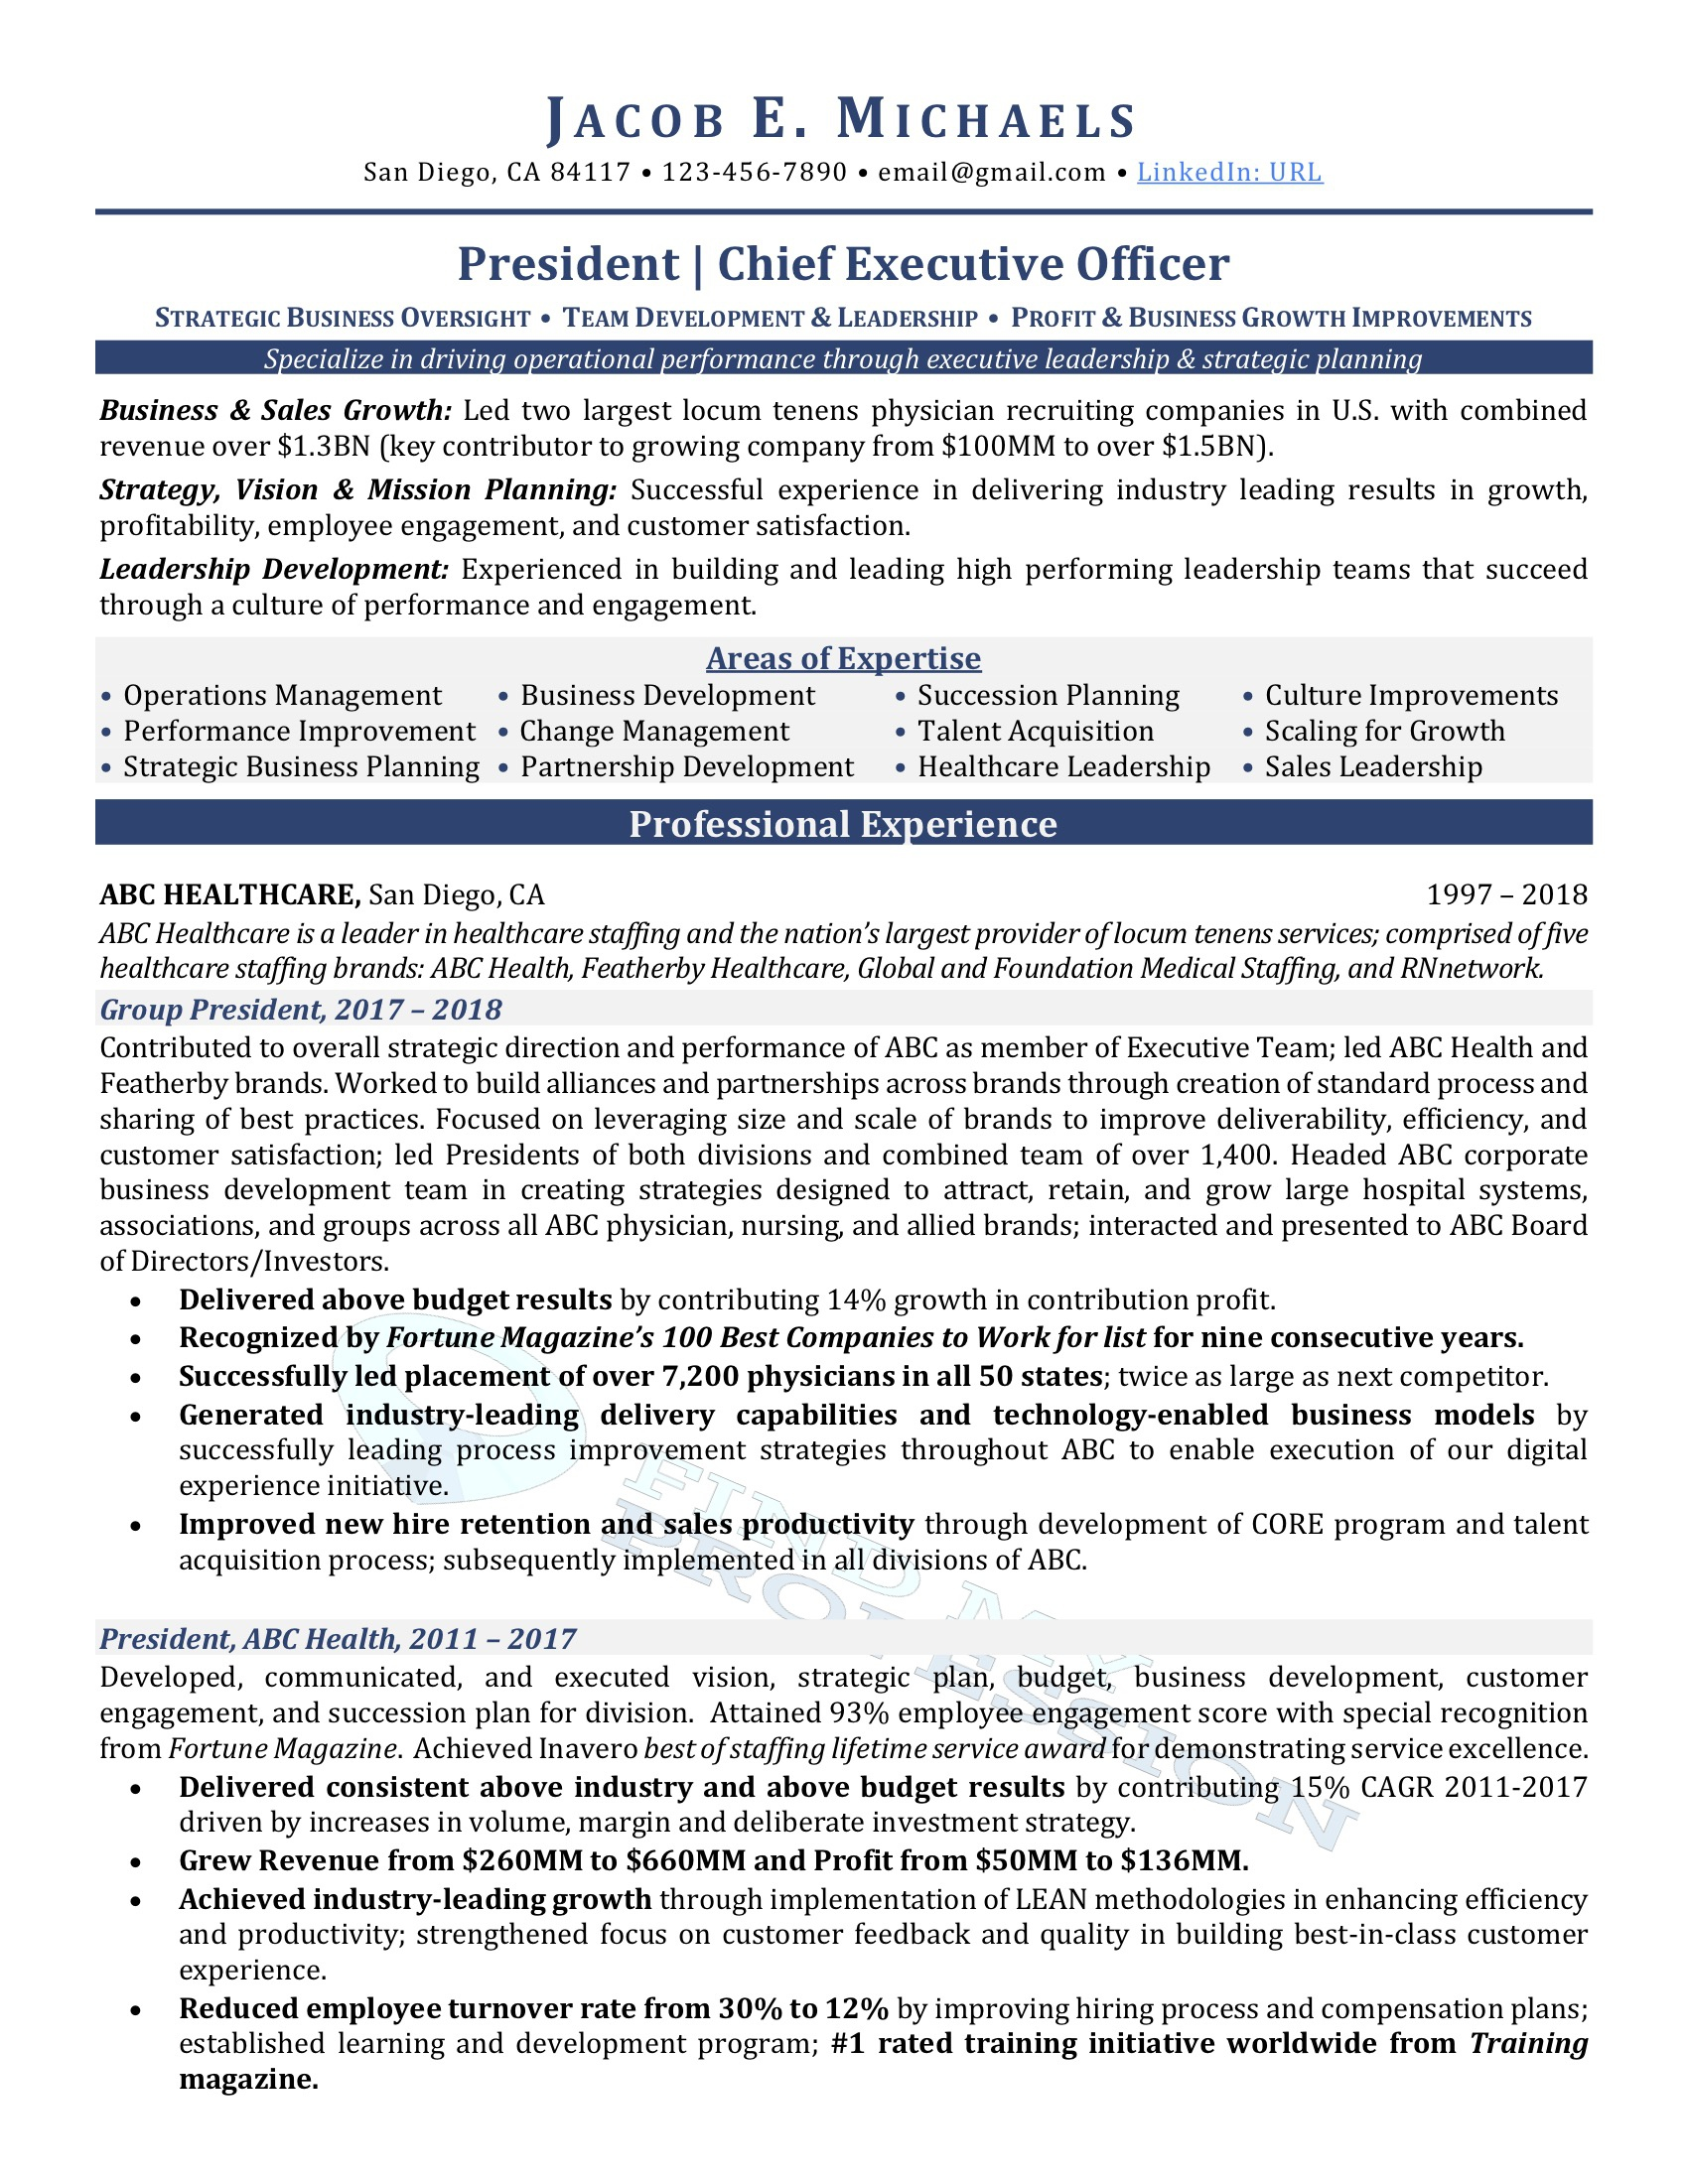 executive level resume examples line 17qq writing services hjhdigdeofz most effective Resume Executive Level Resume Writing Services